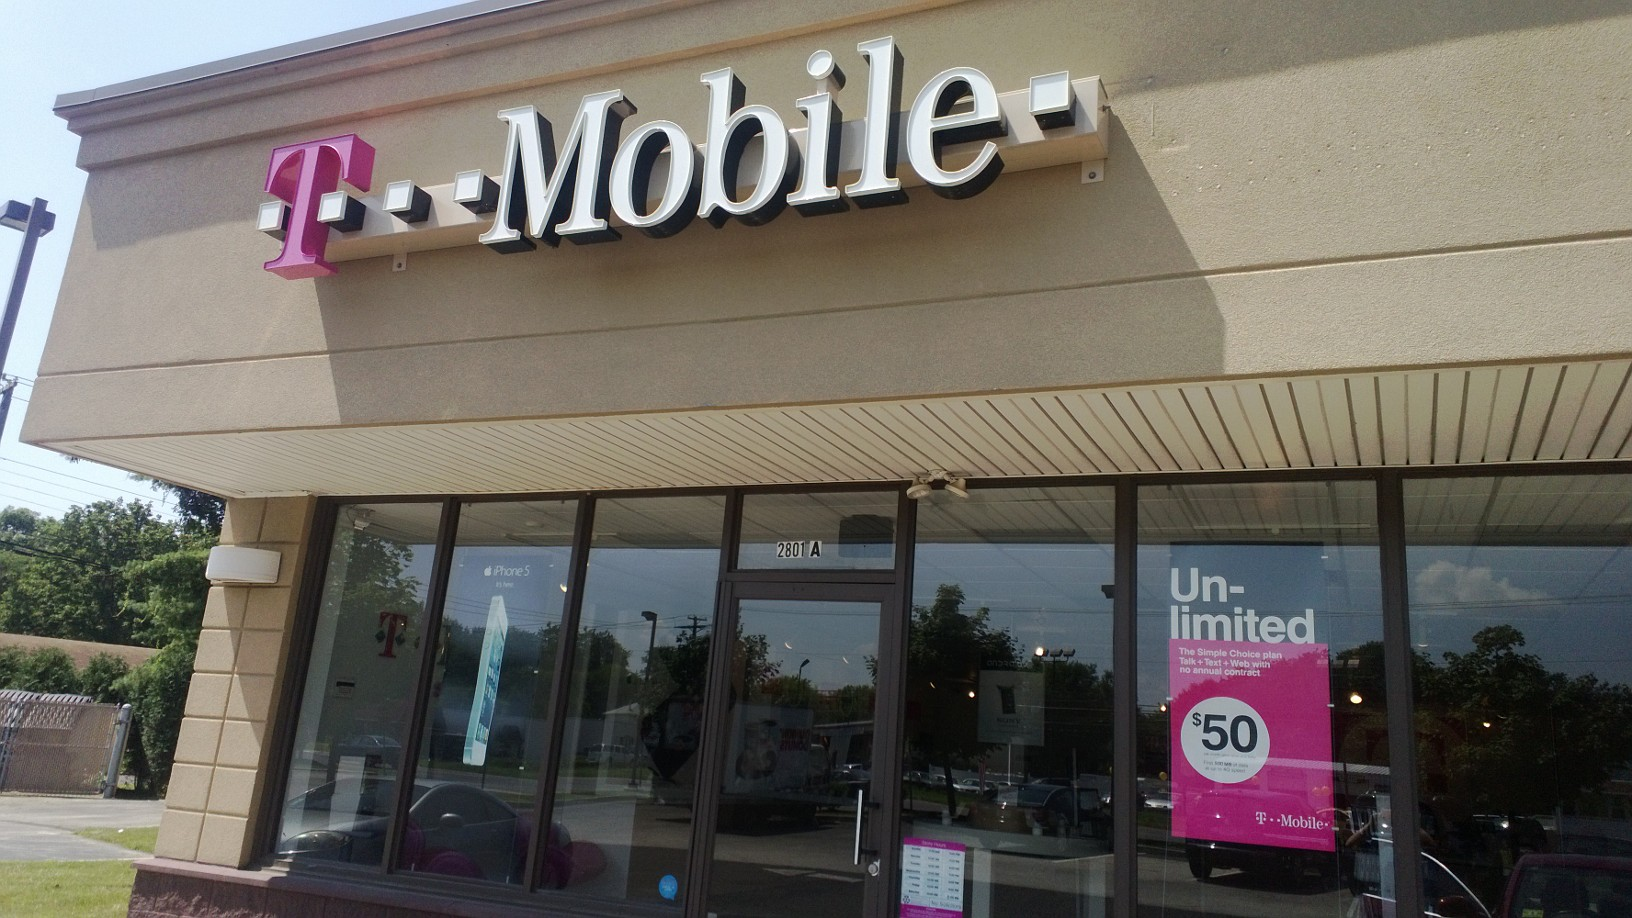 For the easiest trade-in experience, we encourage you to go to one of our T-Mobile stores to trade your old device in for a new one. Trade in with My T-Mobile If you can't get to a store, you can use our online program to trade in your device.